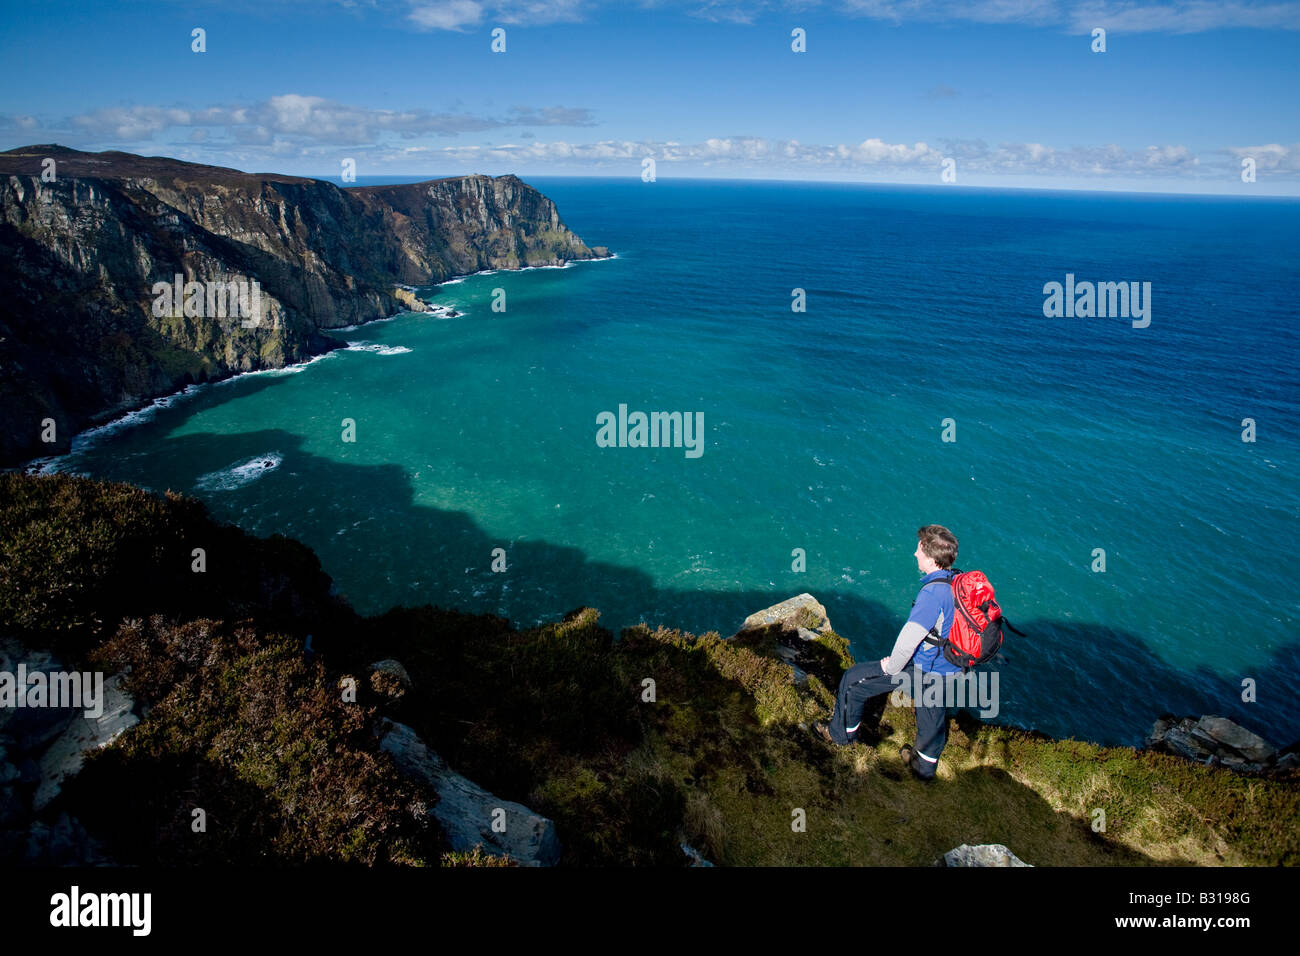 Hiker on the cliffs of Horn Head, near Dunfanaghy, County Donegal, Ireland. - Stock Image